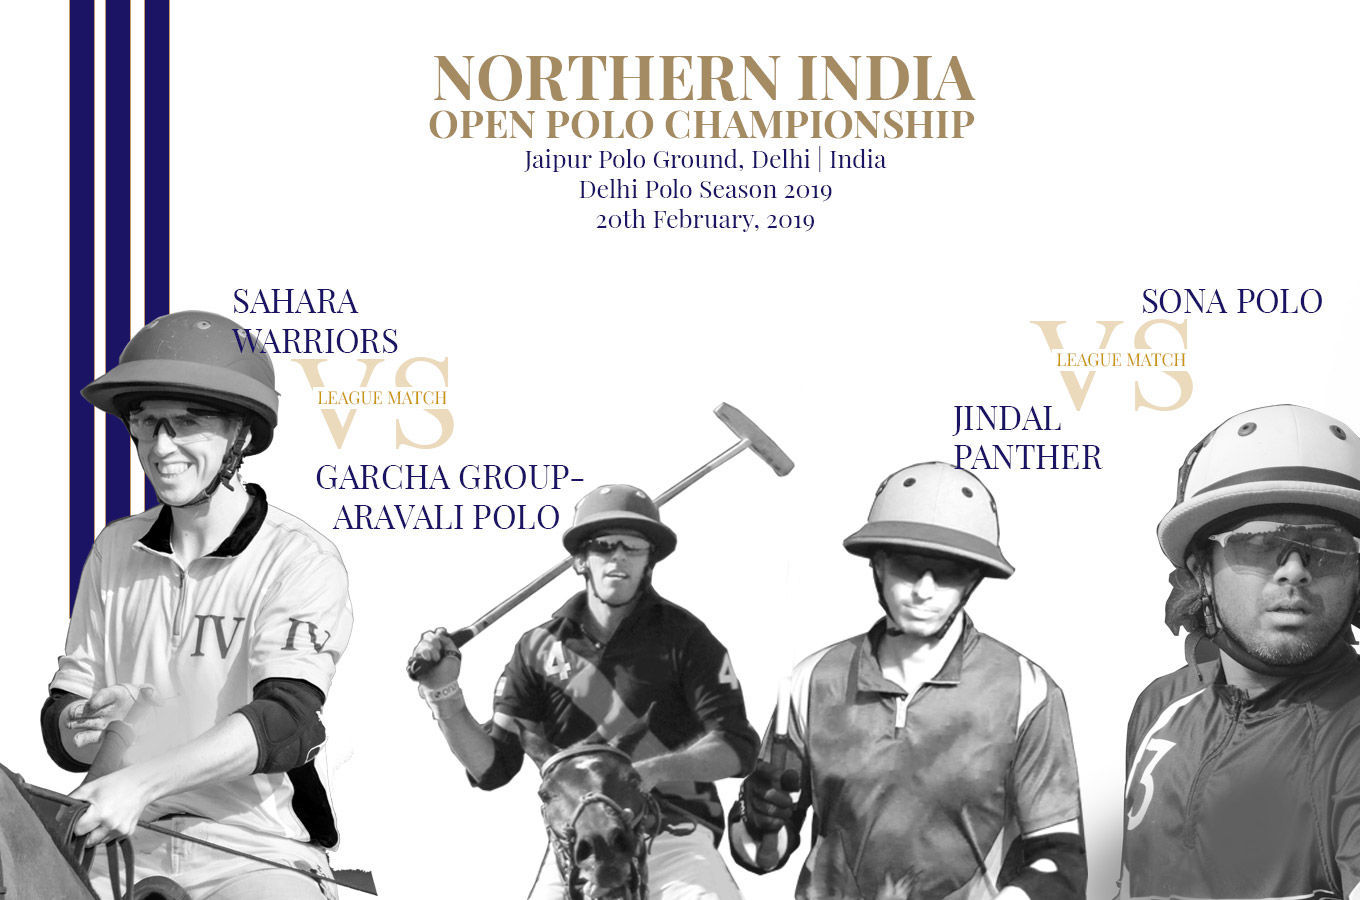 second day of Northern India Open Polo Championship